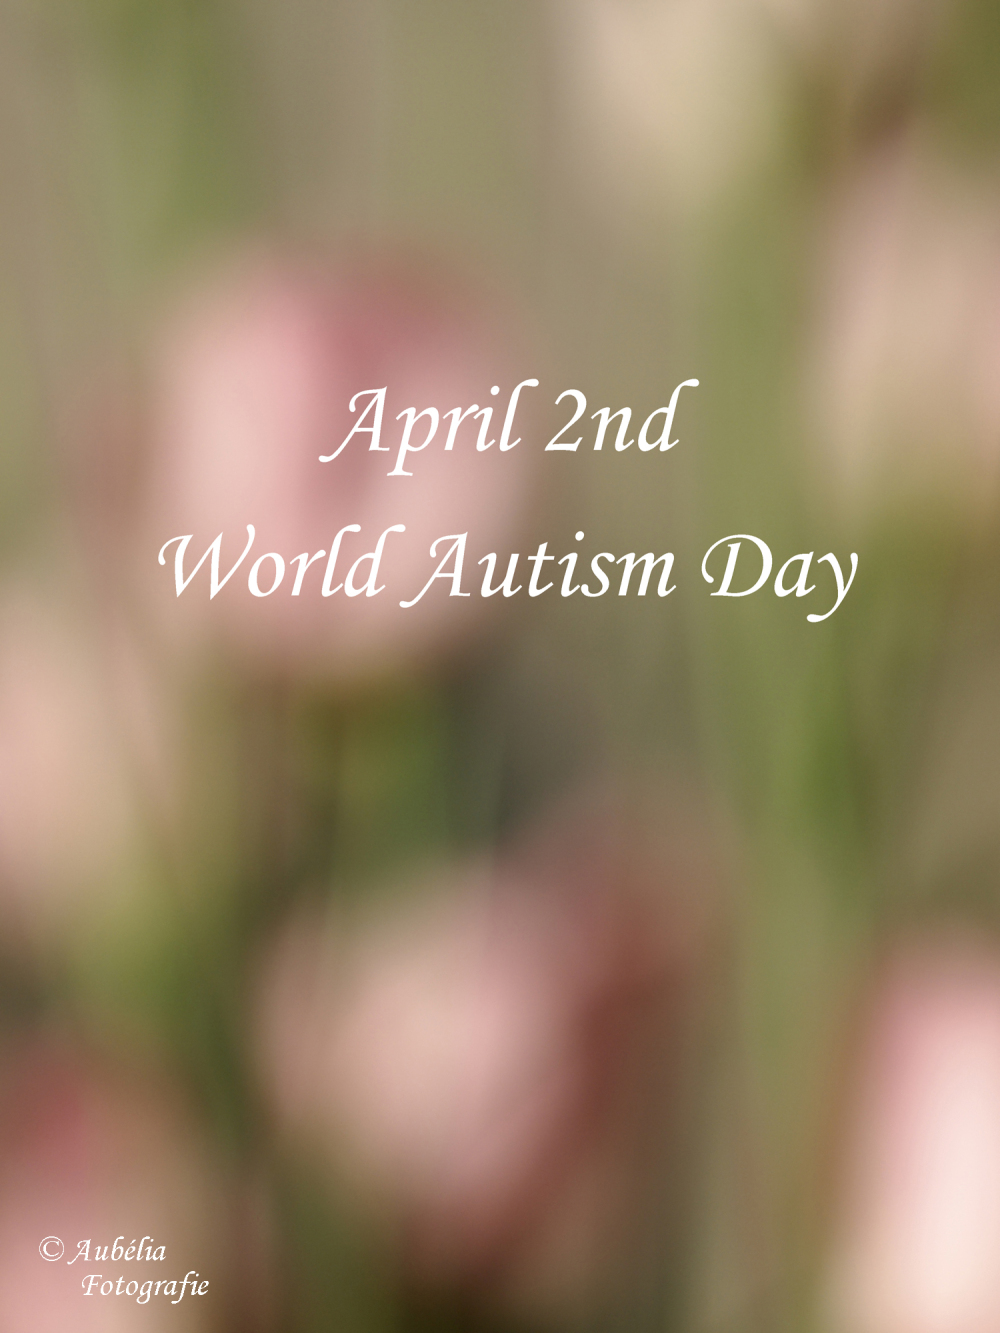 April 2nd World Autism Day